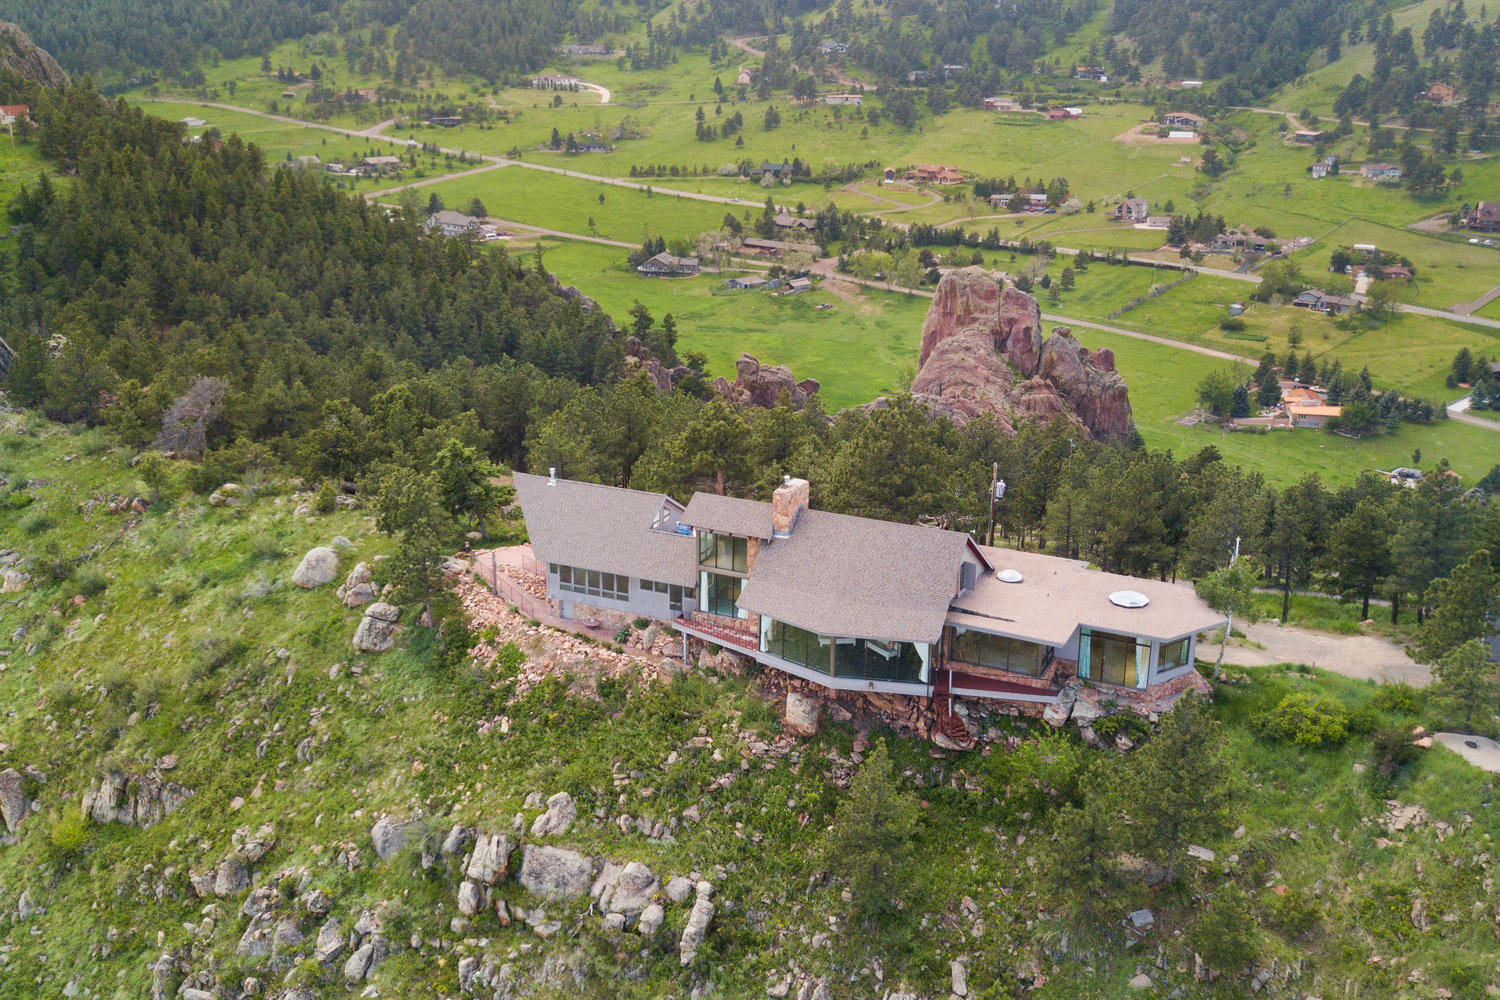 Single Family Home for Sale at 49 Acre Private Estate Property With Spectacular Views 9302 Eastridge Rd Golden, Colorado 80403 United States